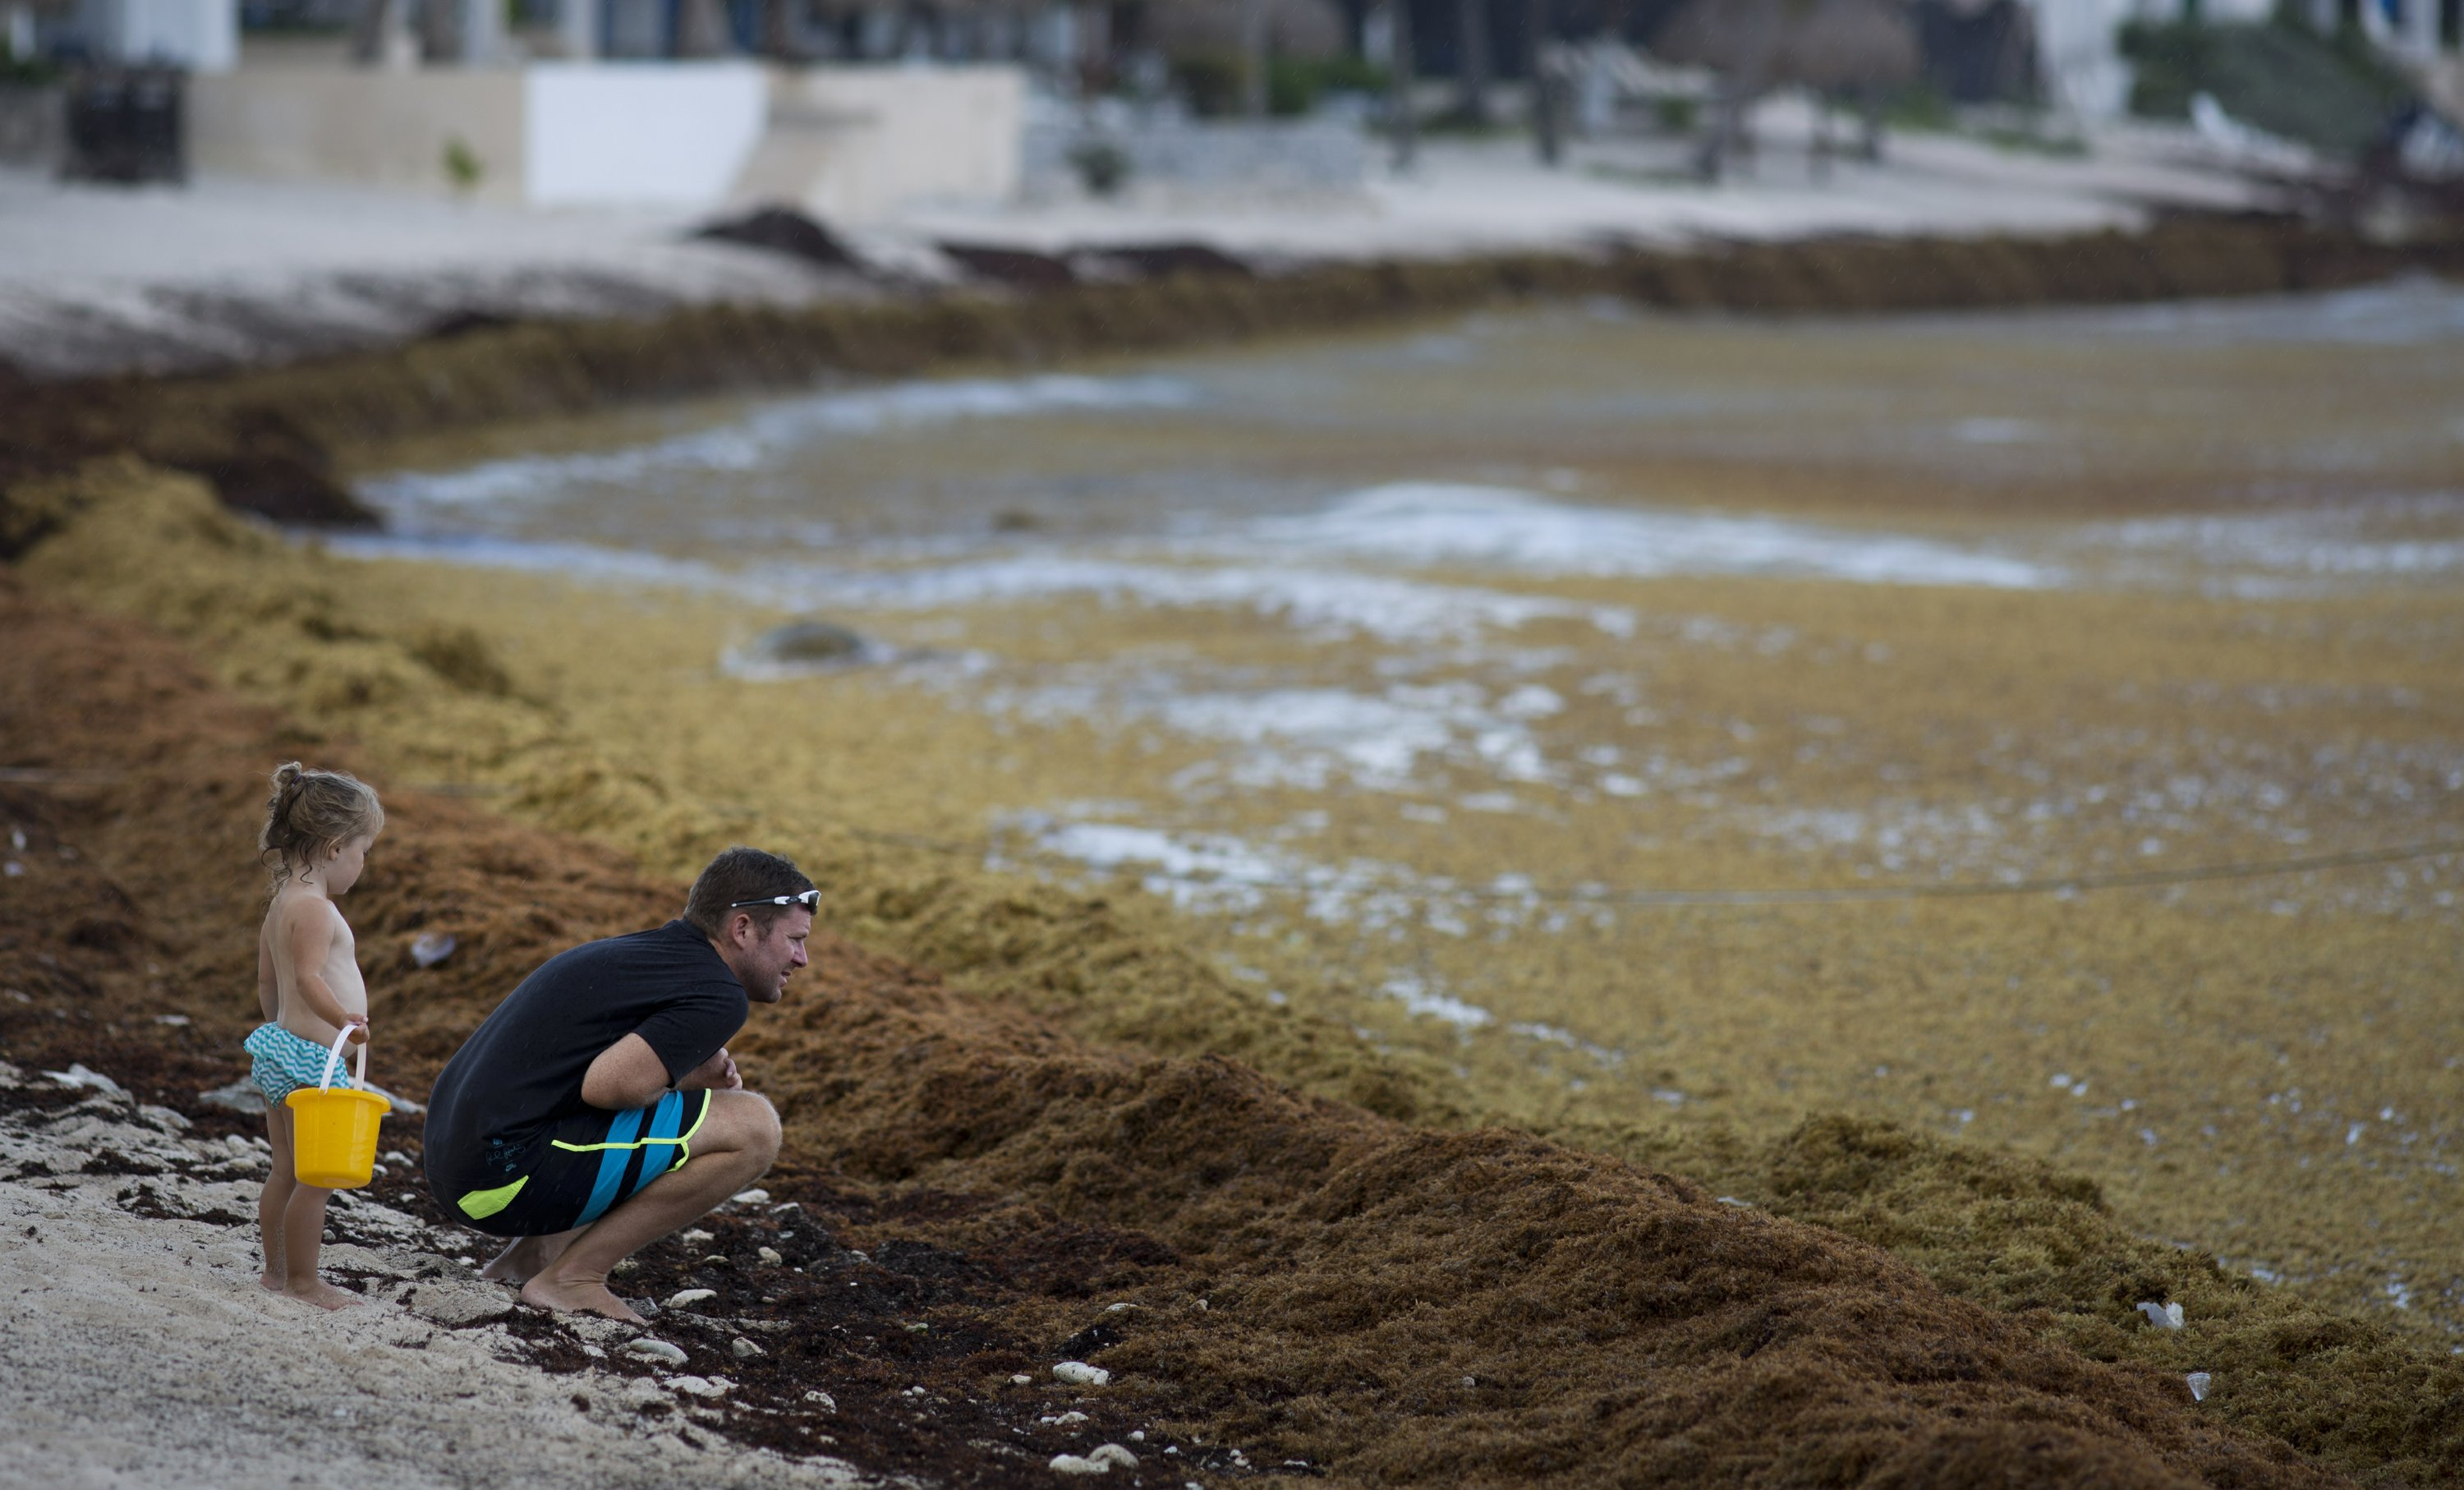 Mexico to build seaweed barriers to protect beaches